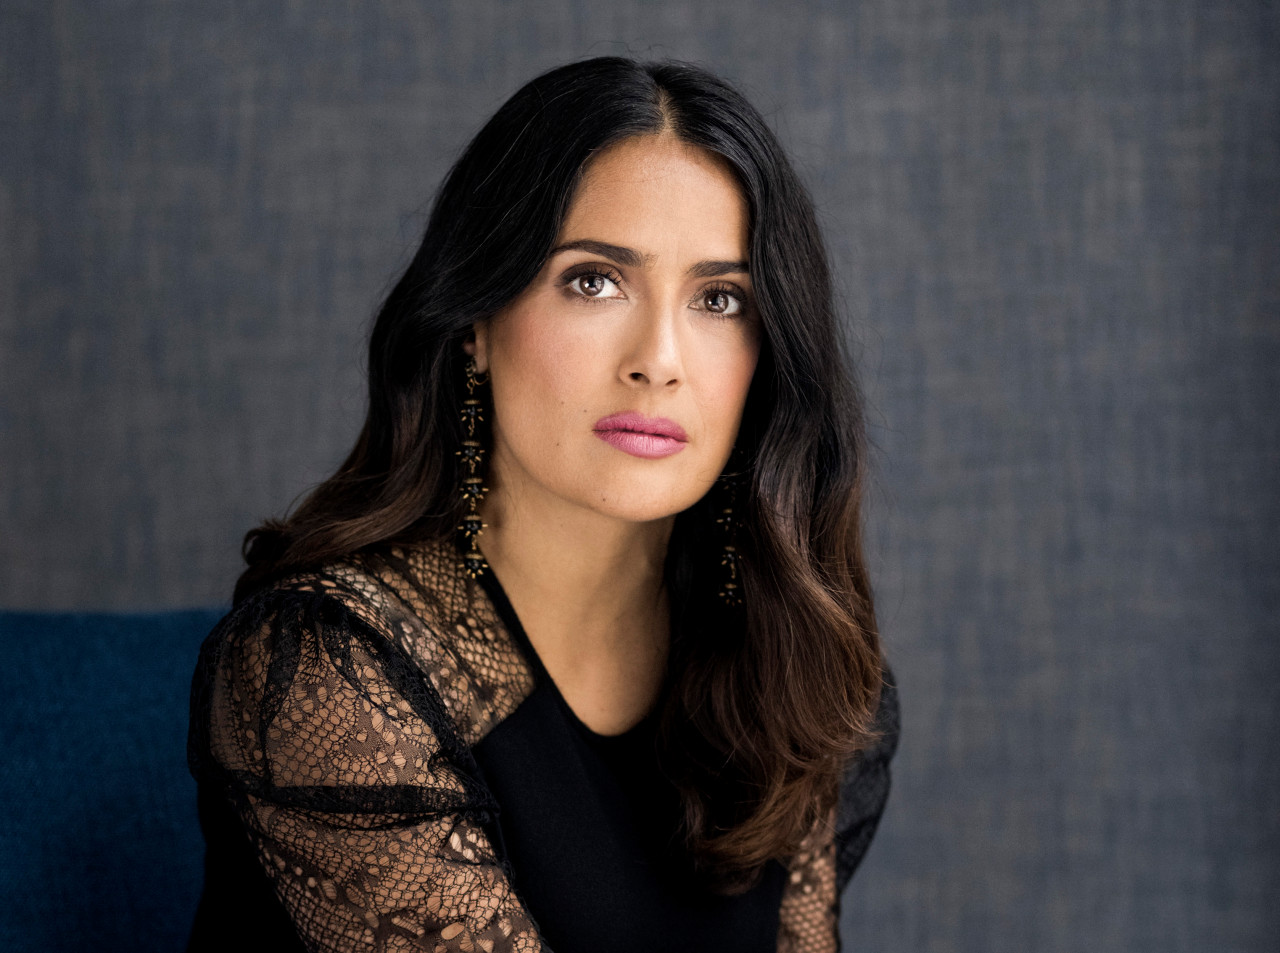 Mexican-born actress Salma Hayek played Kahlo in the 2002 and Julie Taymor-directed film Frida.